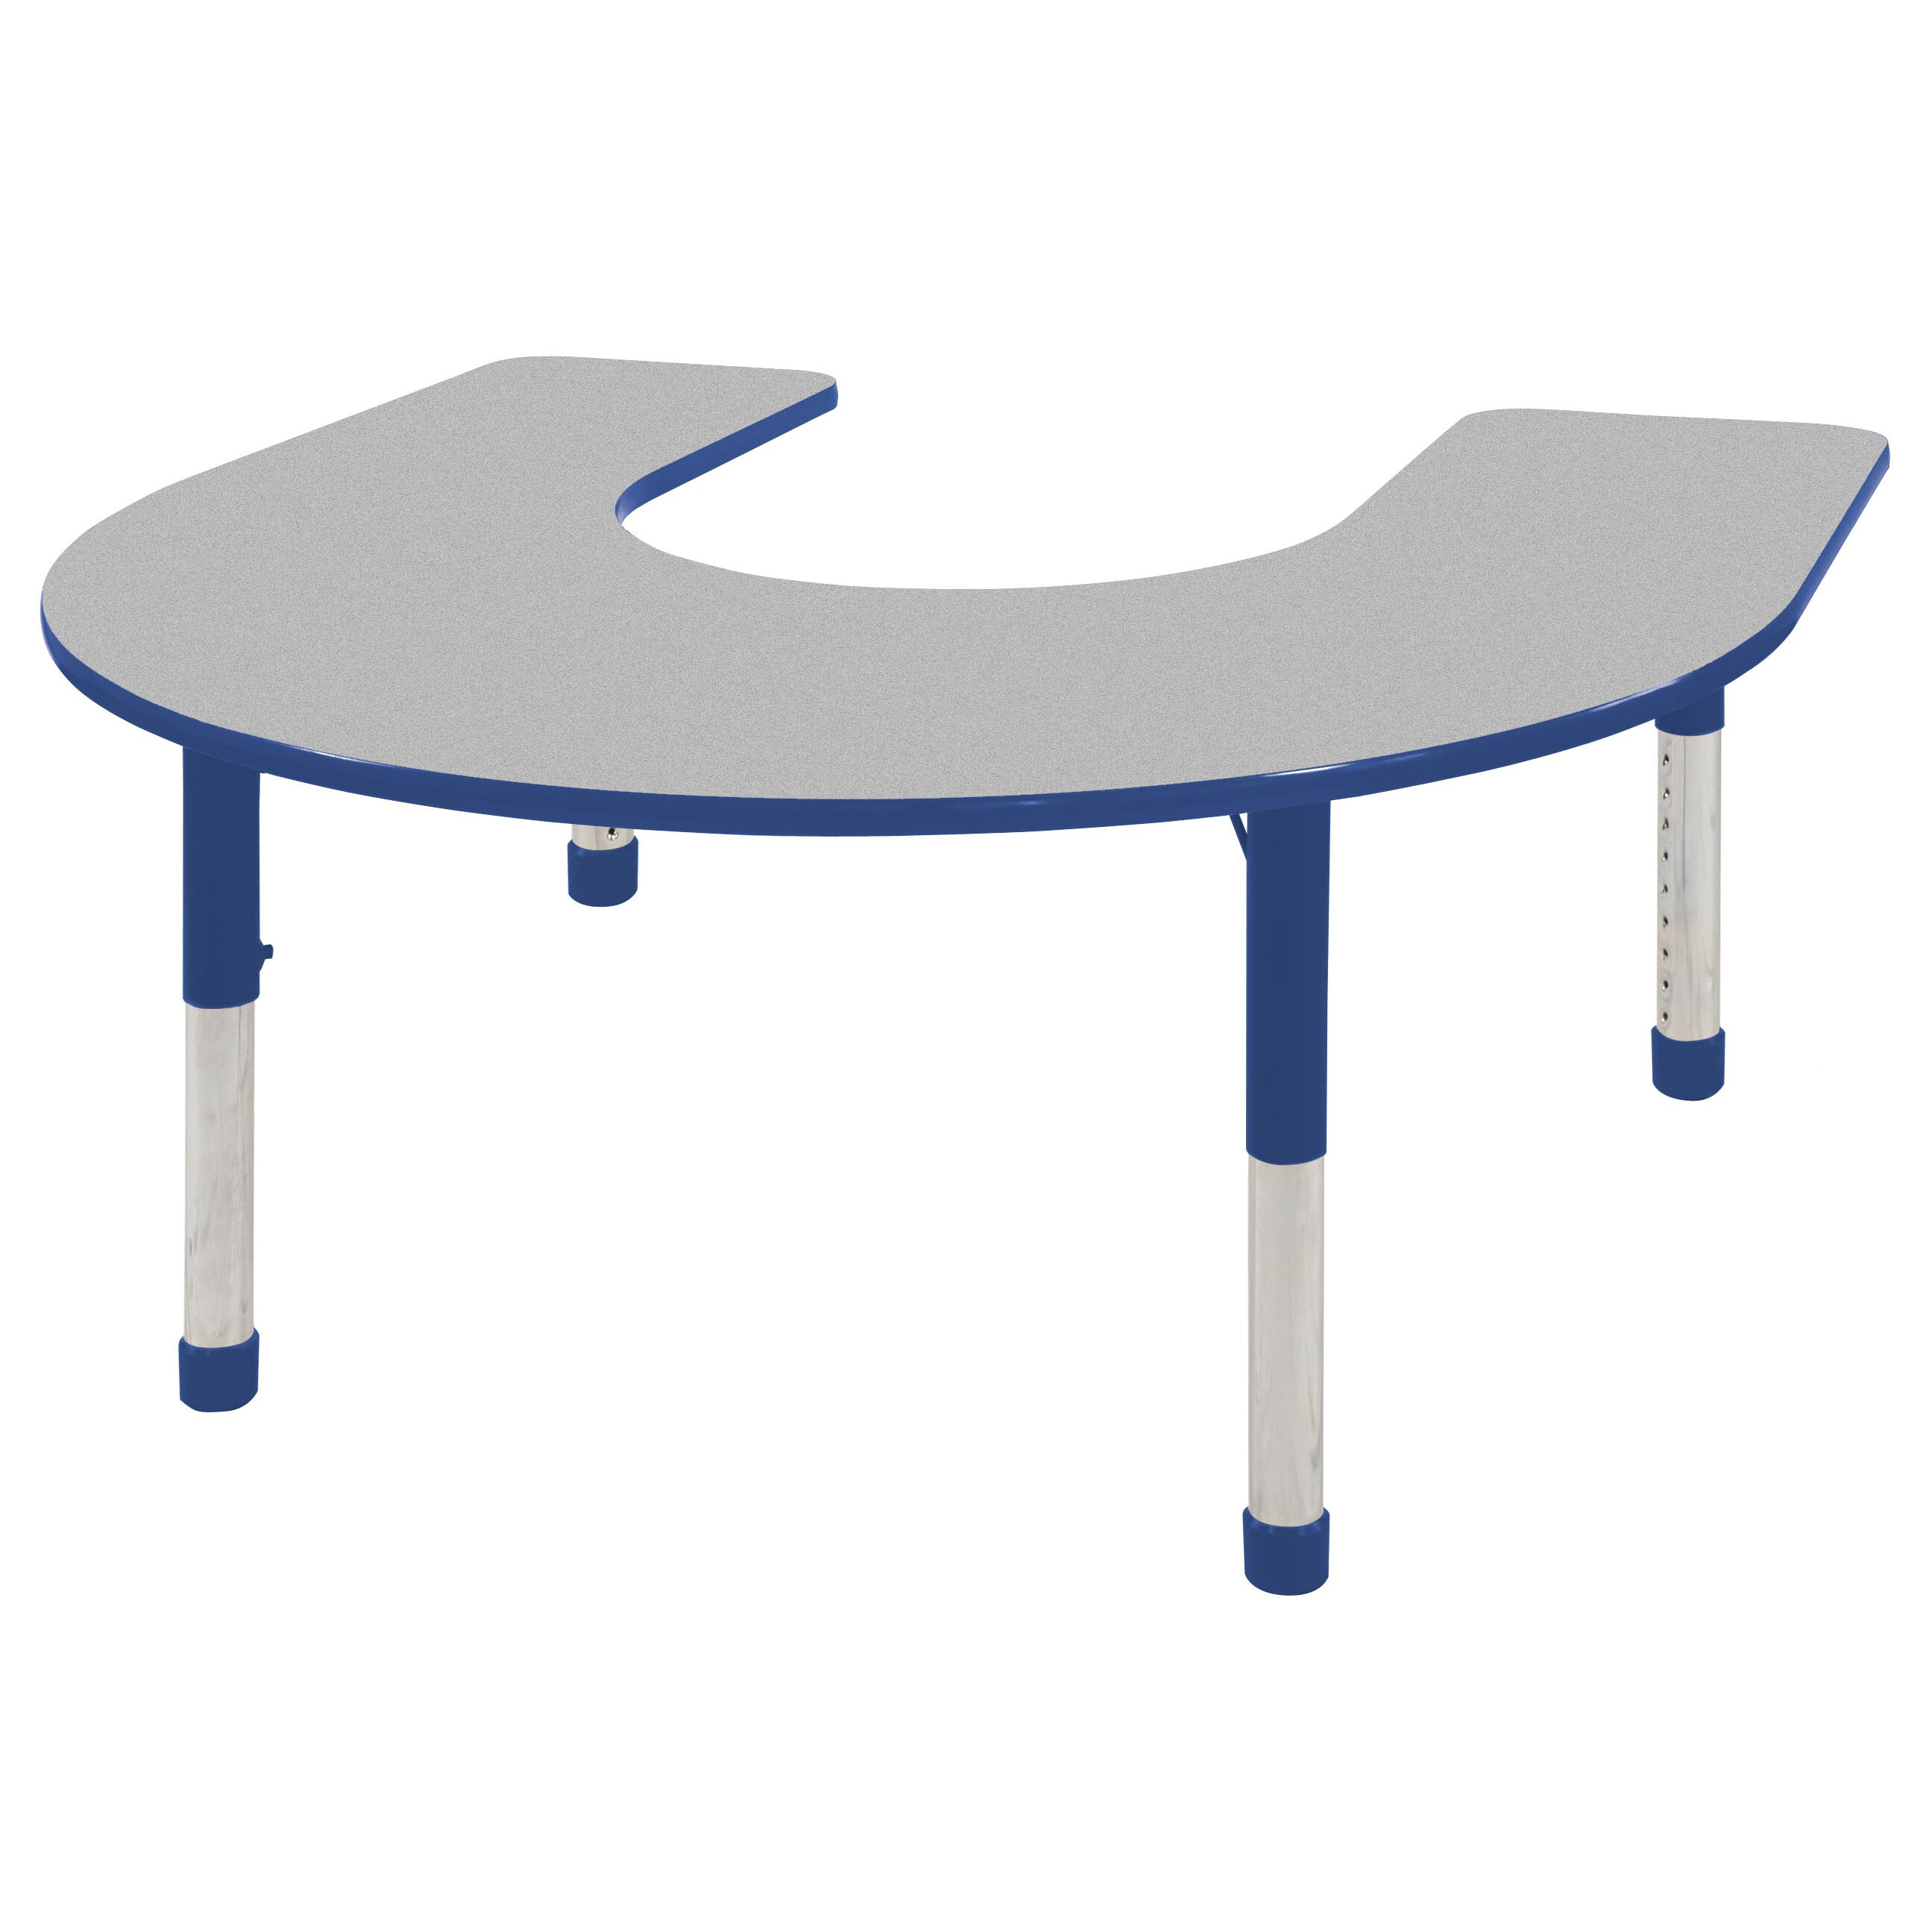 Ecr4kids 66 x 60 horseshoe activity table reviews for Table x reviews